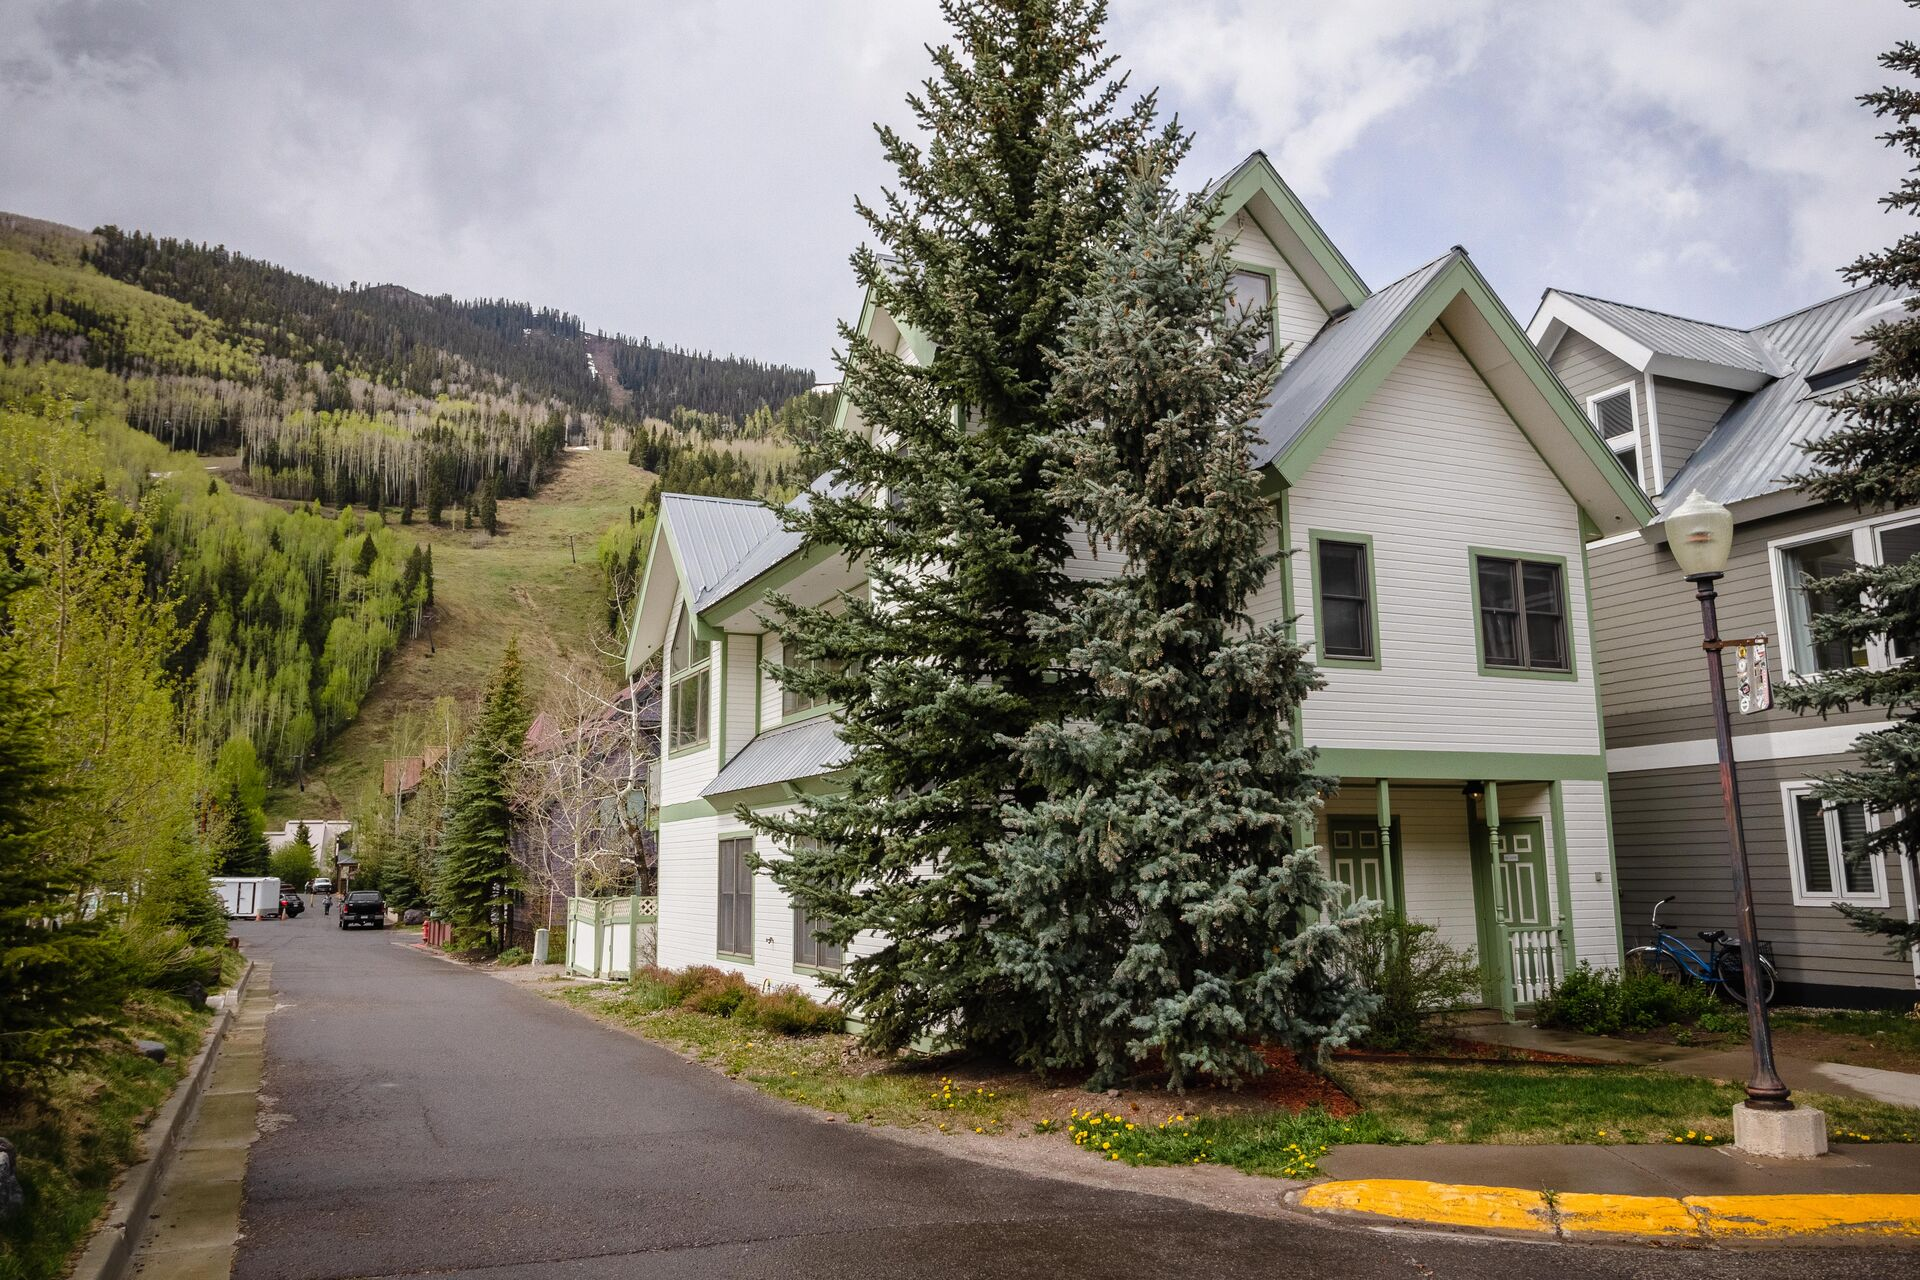 Exterior of this vacation rental in Telluride